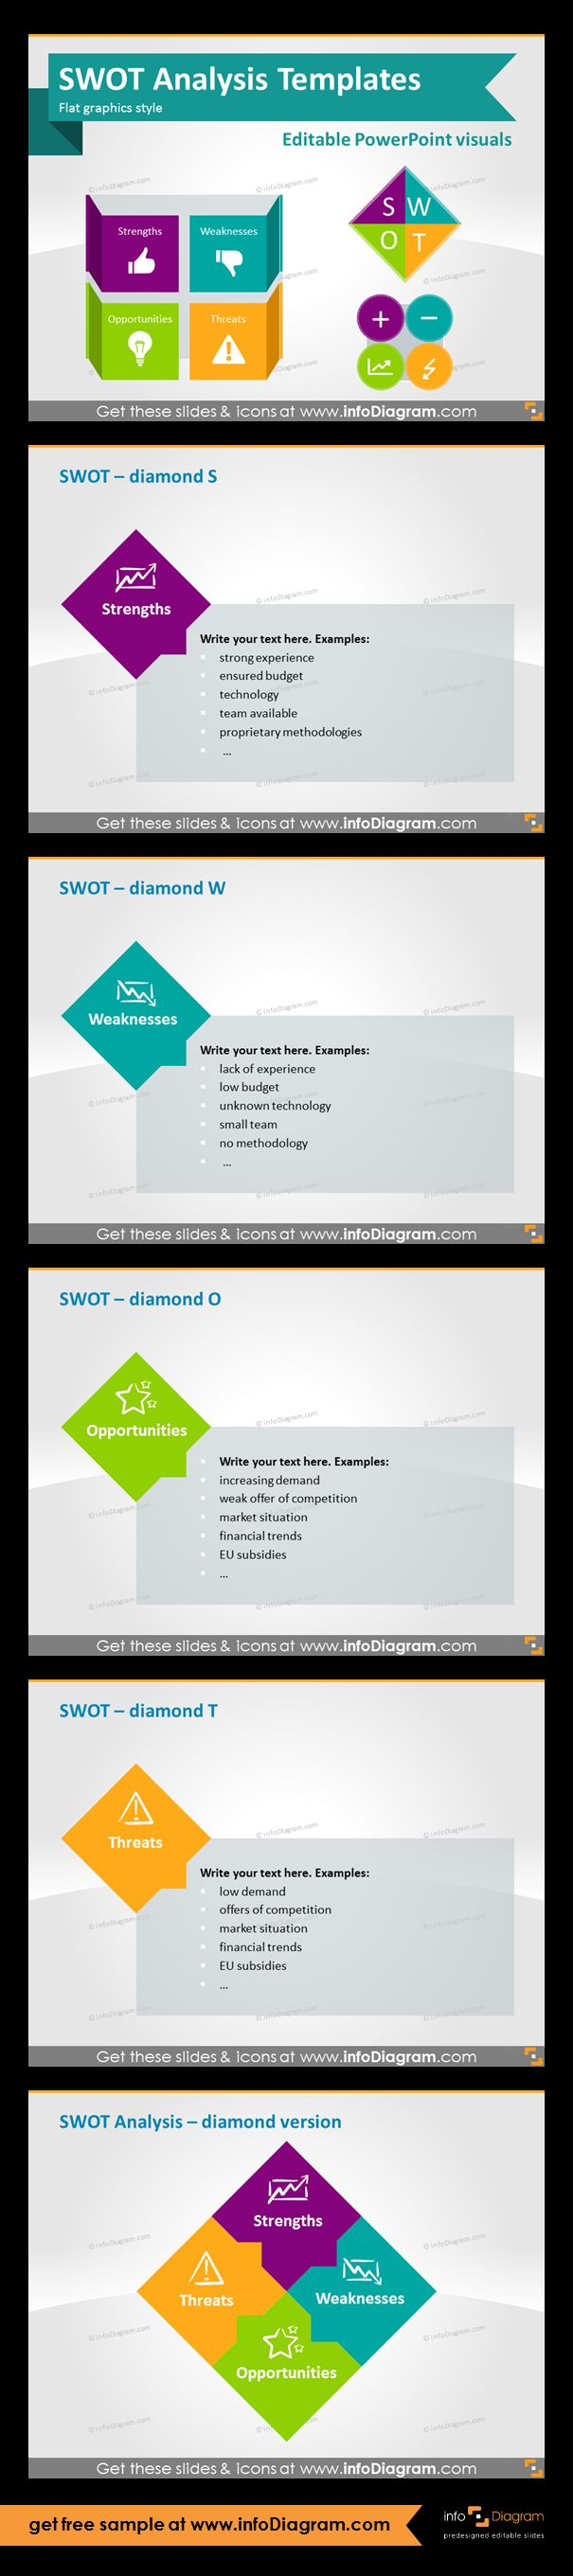 SWOT analysis template diagrams. Diamond shape version with each element separately and with examples. Unique editable icons representing Strengths, Weaknesses, Opportunities, Threats. Fully editable shapes in PowerPoint (color, filling, size - thanks to vector format).